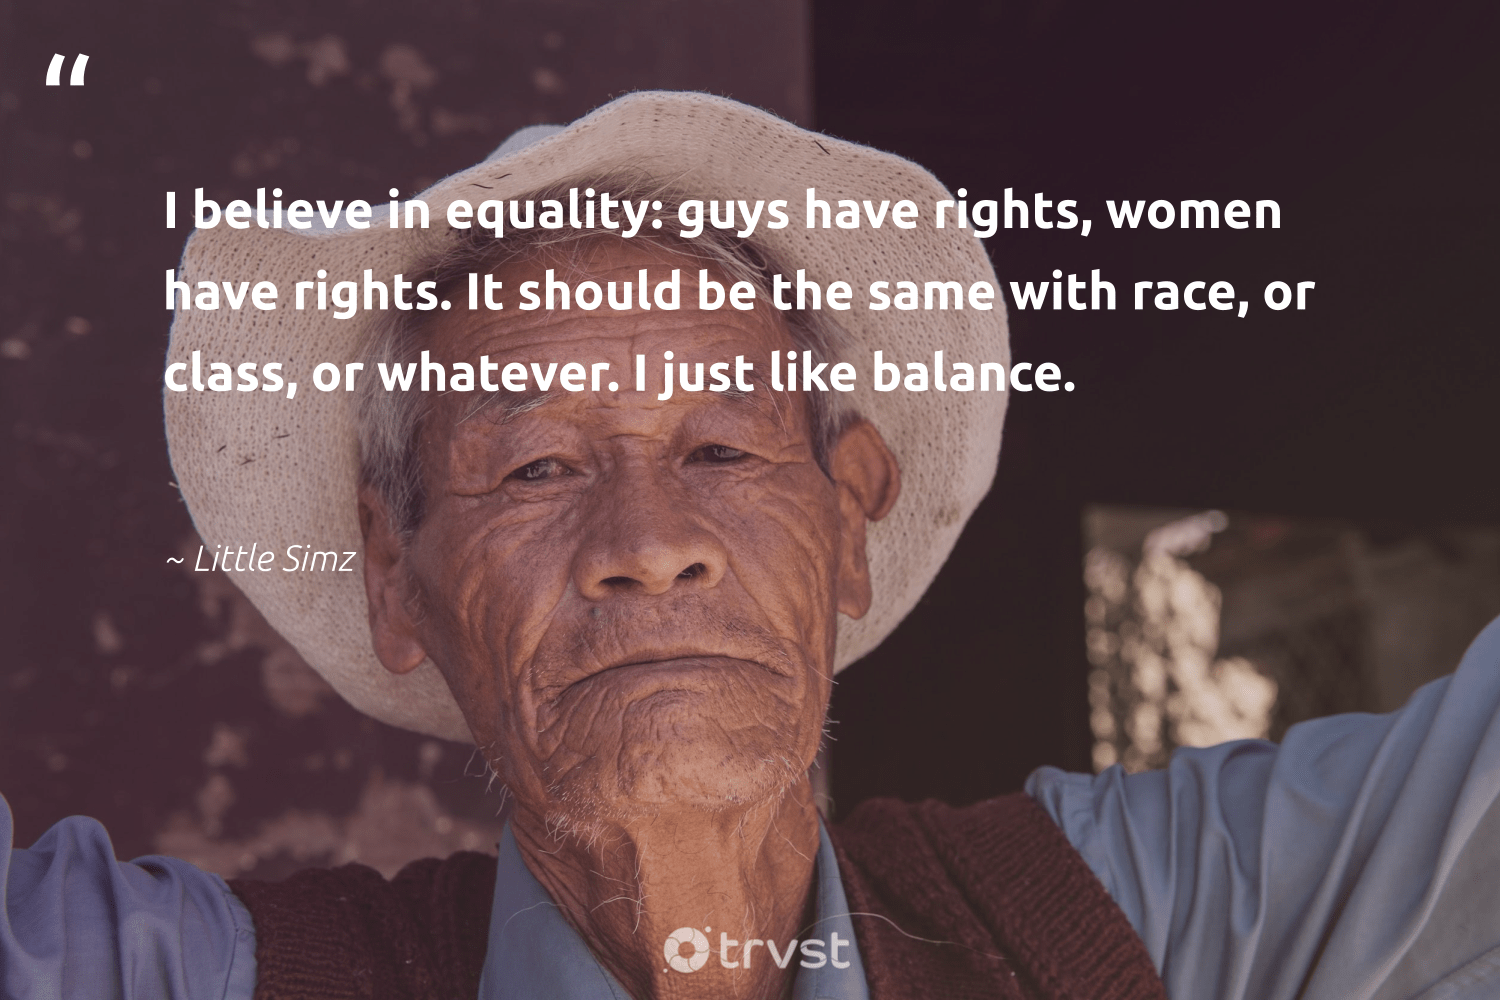 """I believe in equality: guys have rights, women have rights. It should be the same with race, or class, or whatever. I just like balance.""  - Little Simz #trvst #quotes #women #balance #healthyfood #socialchange #changemakers #changetheworld #healthylifestyle #giveback #togetherwecan #dotherightthing"